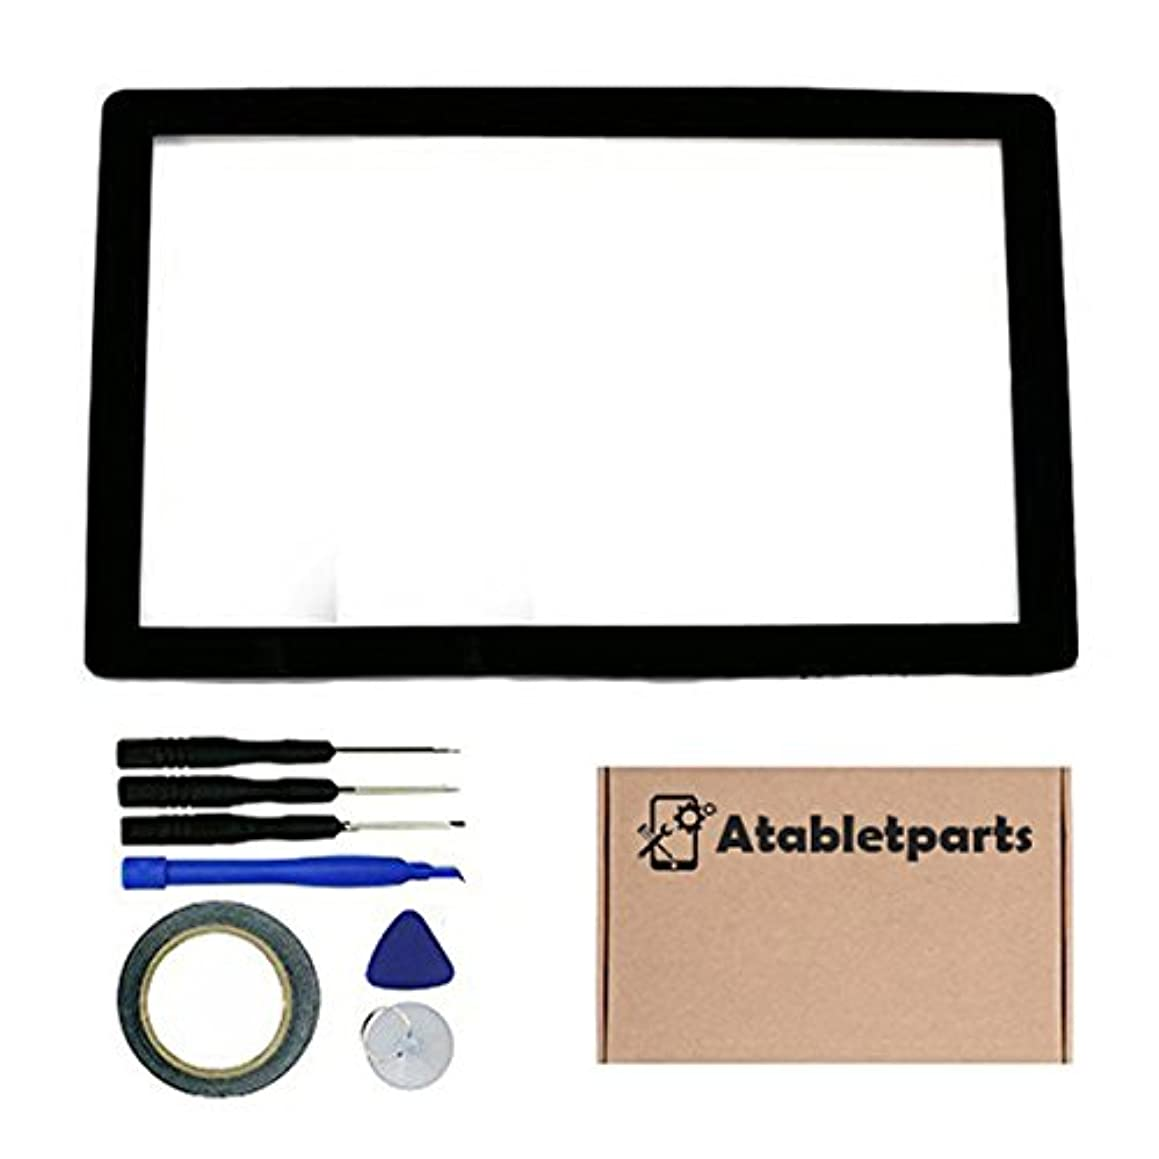 Atabletparts Touch Screen Digitizer Replacement for iRULU eXpro X1 Mini 7 Inch Tablet